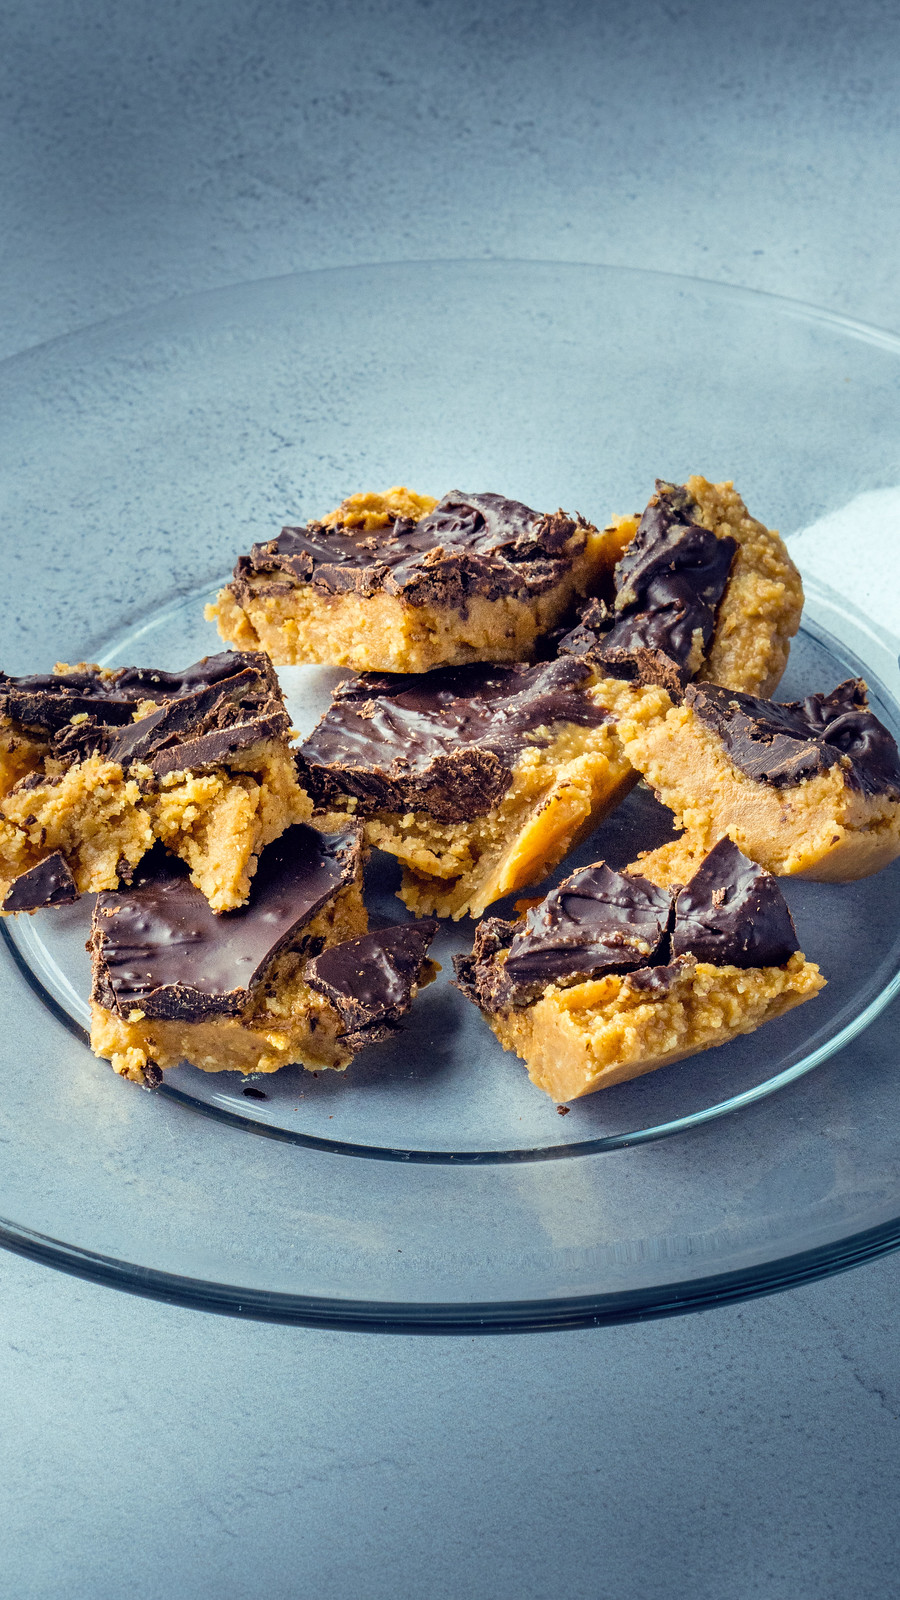 Photo Friday / Recipe: Low Carbohydrate Healthy Fat Peanut Butter Chocolate Squares